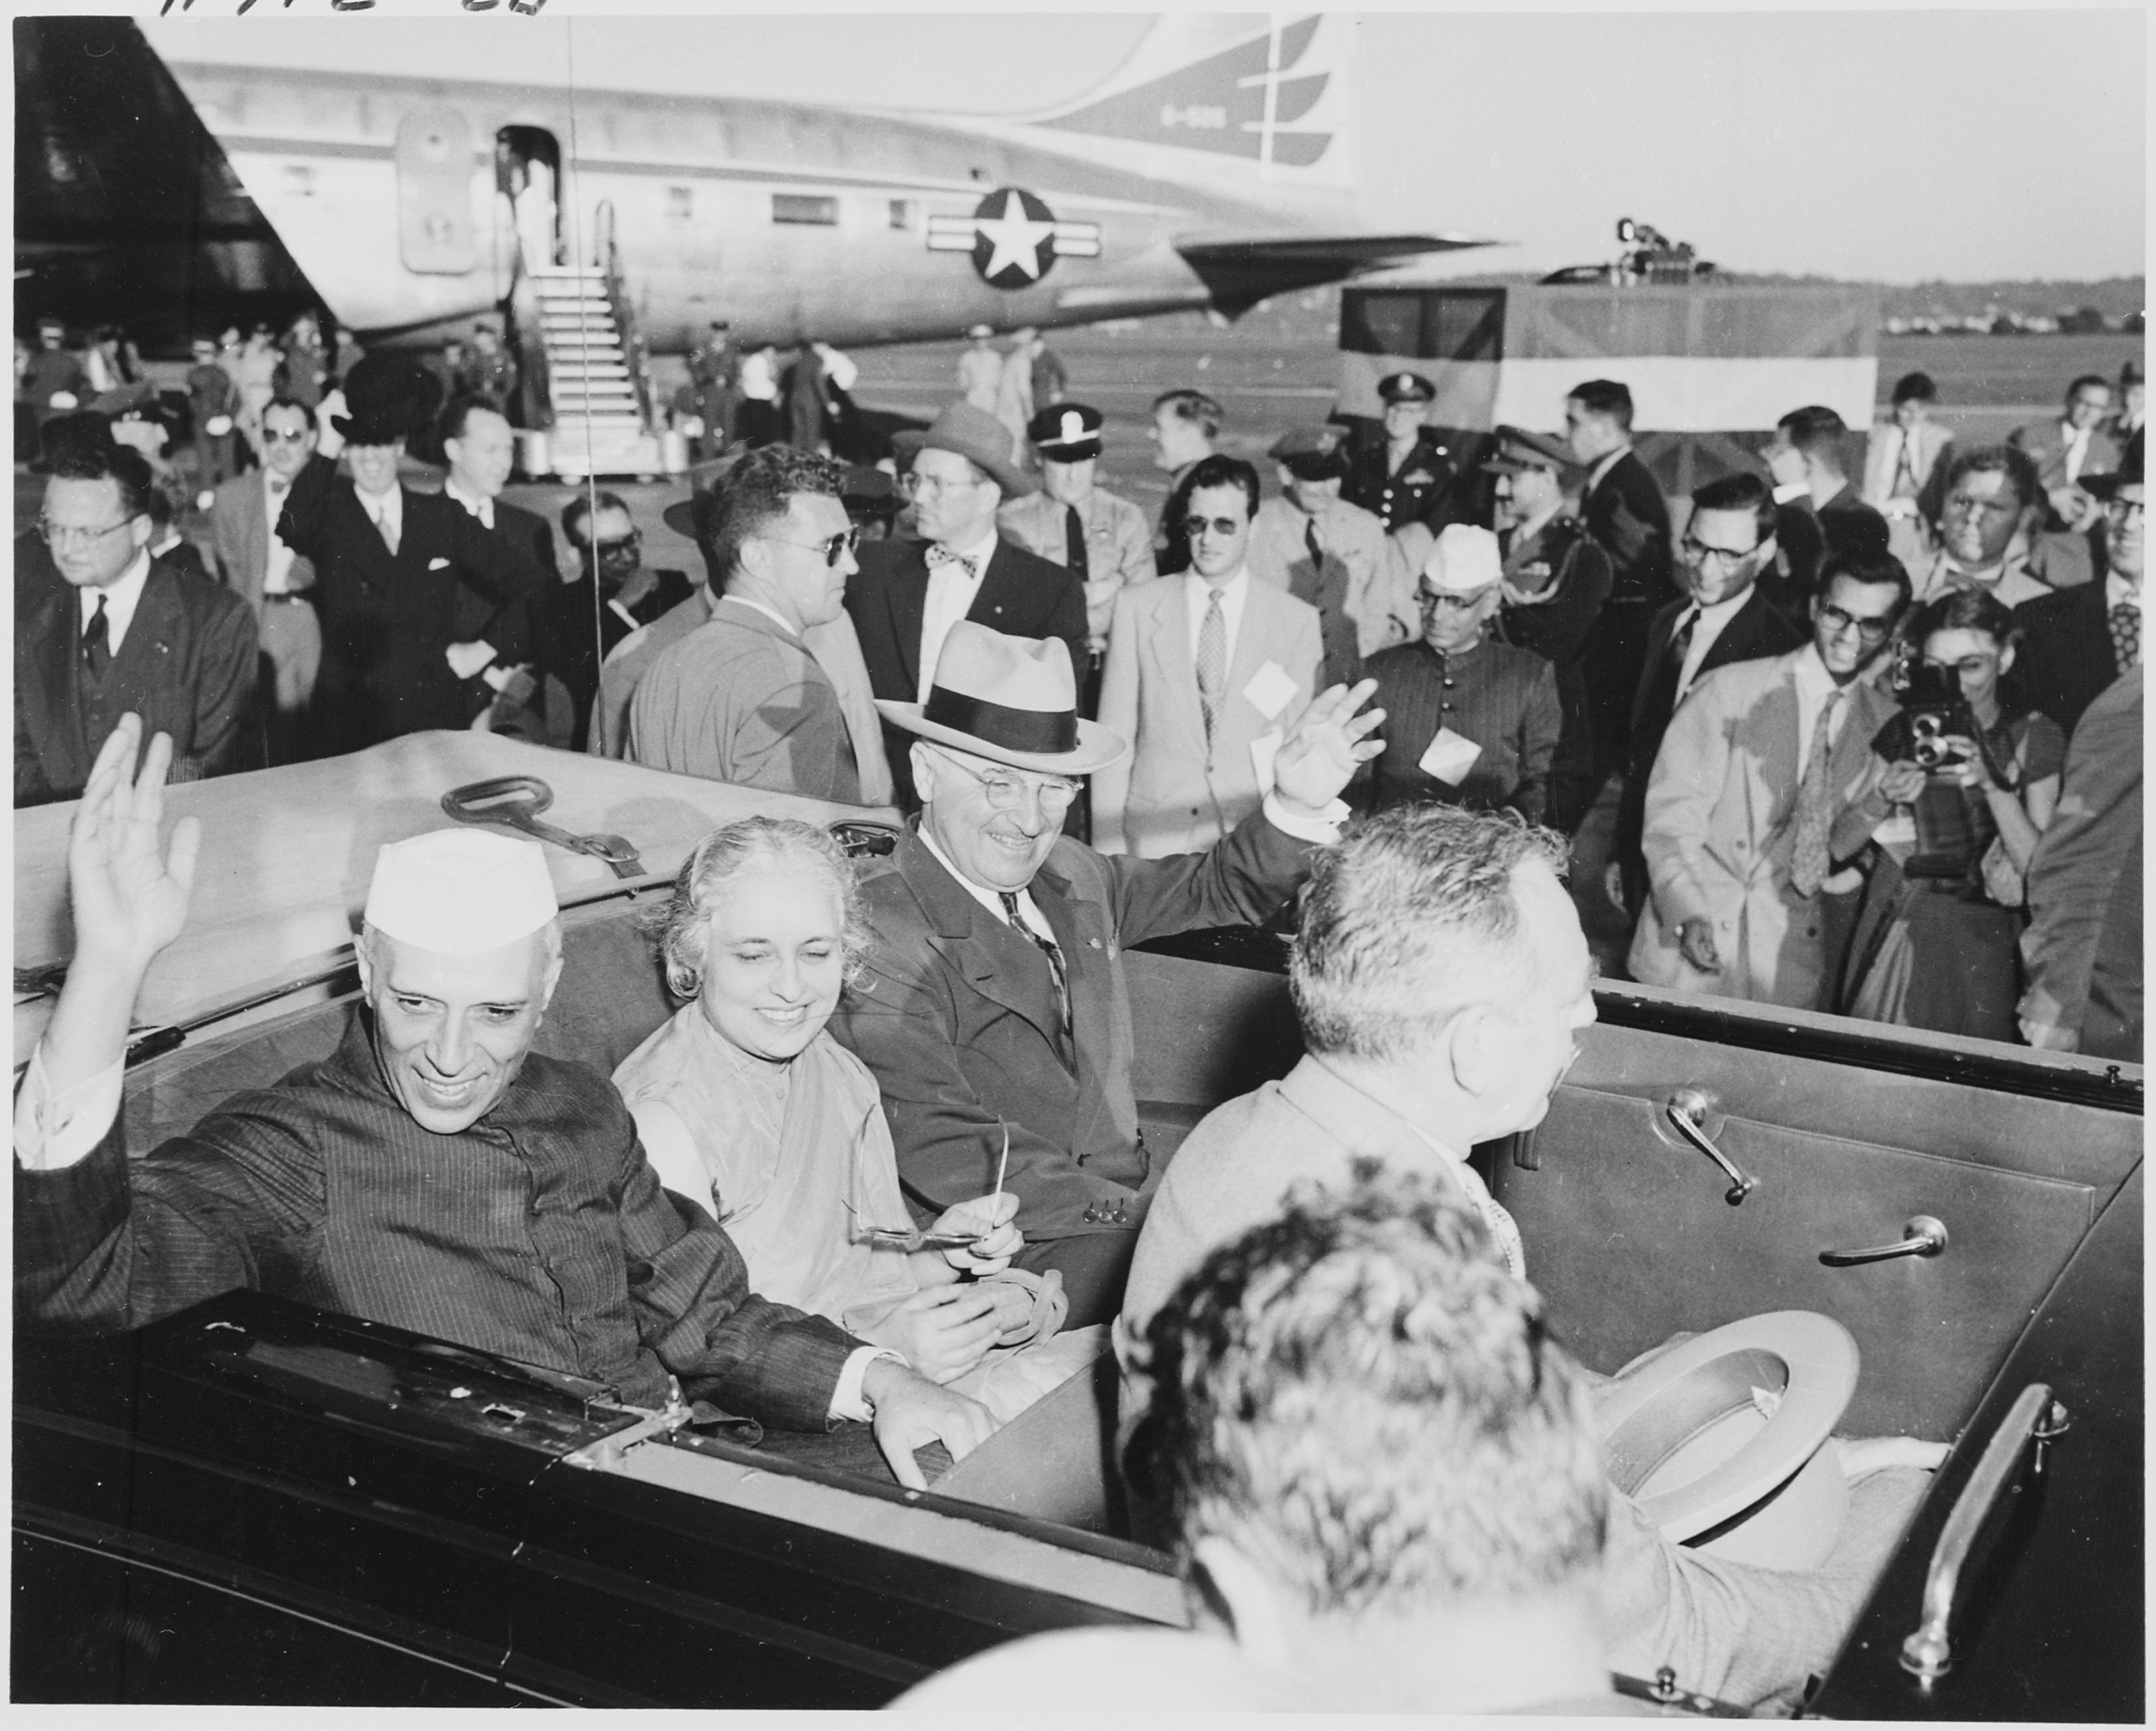 U.S. President Harry S. Truman and Indian Prime Minister Jawaharlal Nehru, with Nehru's sister, Madame Pandit, waving from their limousine as they leave Washington National Airport, during Nehru's visit to the United States. Photo taken by Abbie Rowe on October 11, 1949. From the holdings of the National Archives and Records Administration. Office of Presidential Libraries. Harry S. Truman Library. (04/01/1985 - ), cataloged under the National Archives Identifier (NAID) 200154.